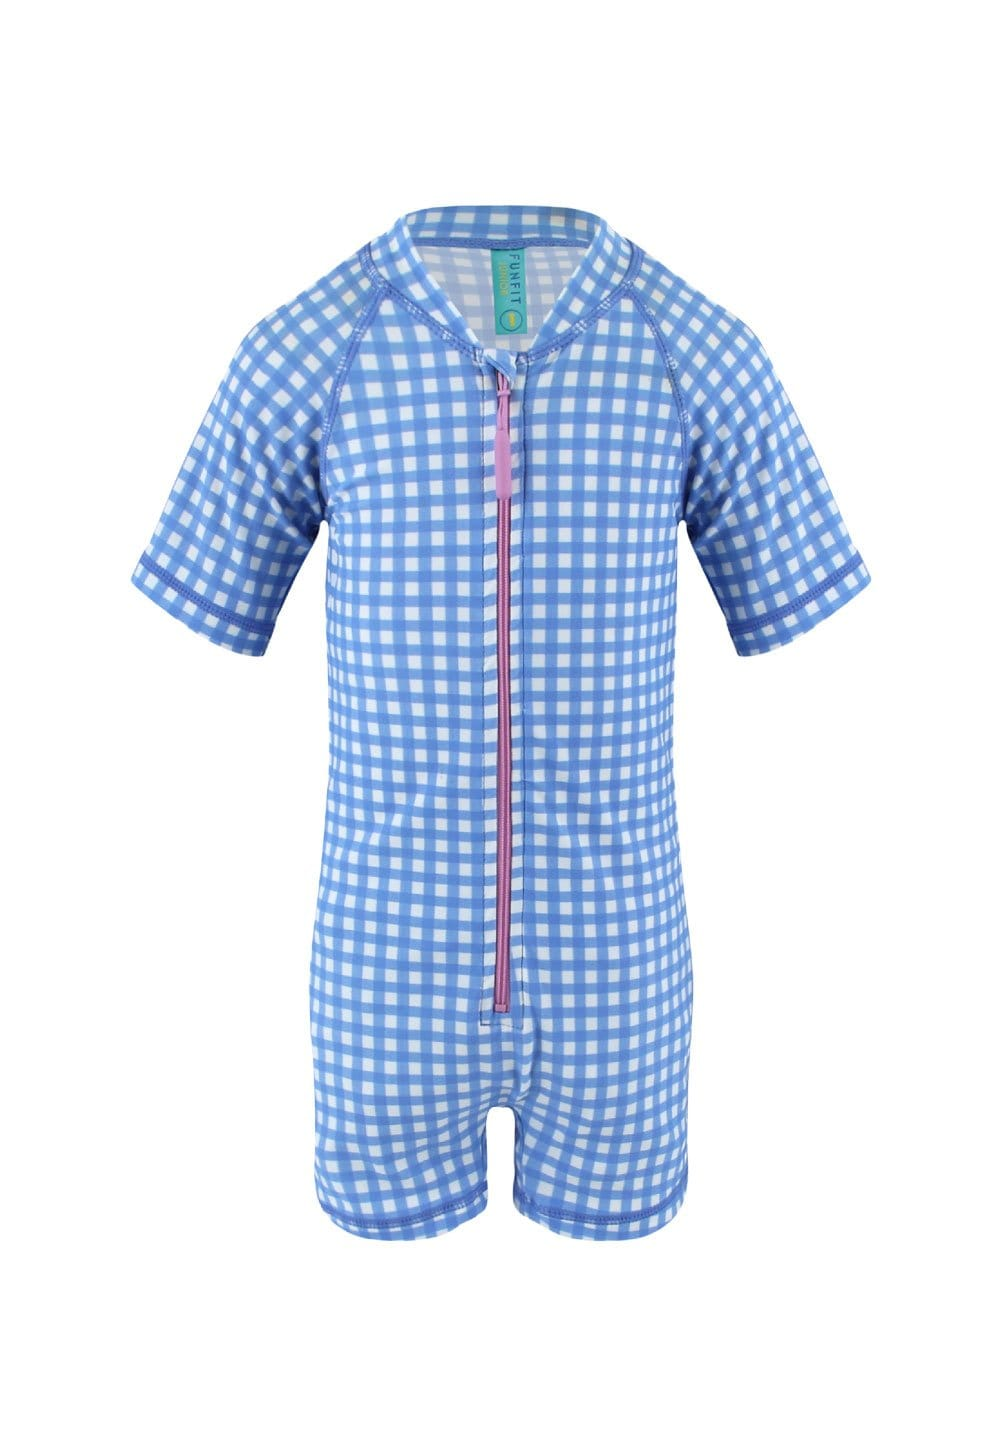 FUNFIT UPF50+ Junior Sunsuit Half Sleeve (Unisex) in Gingham Summer Print